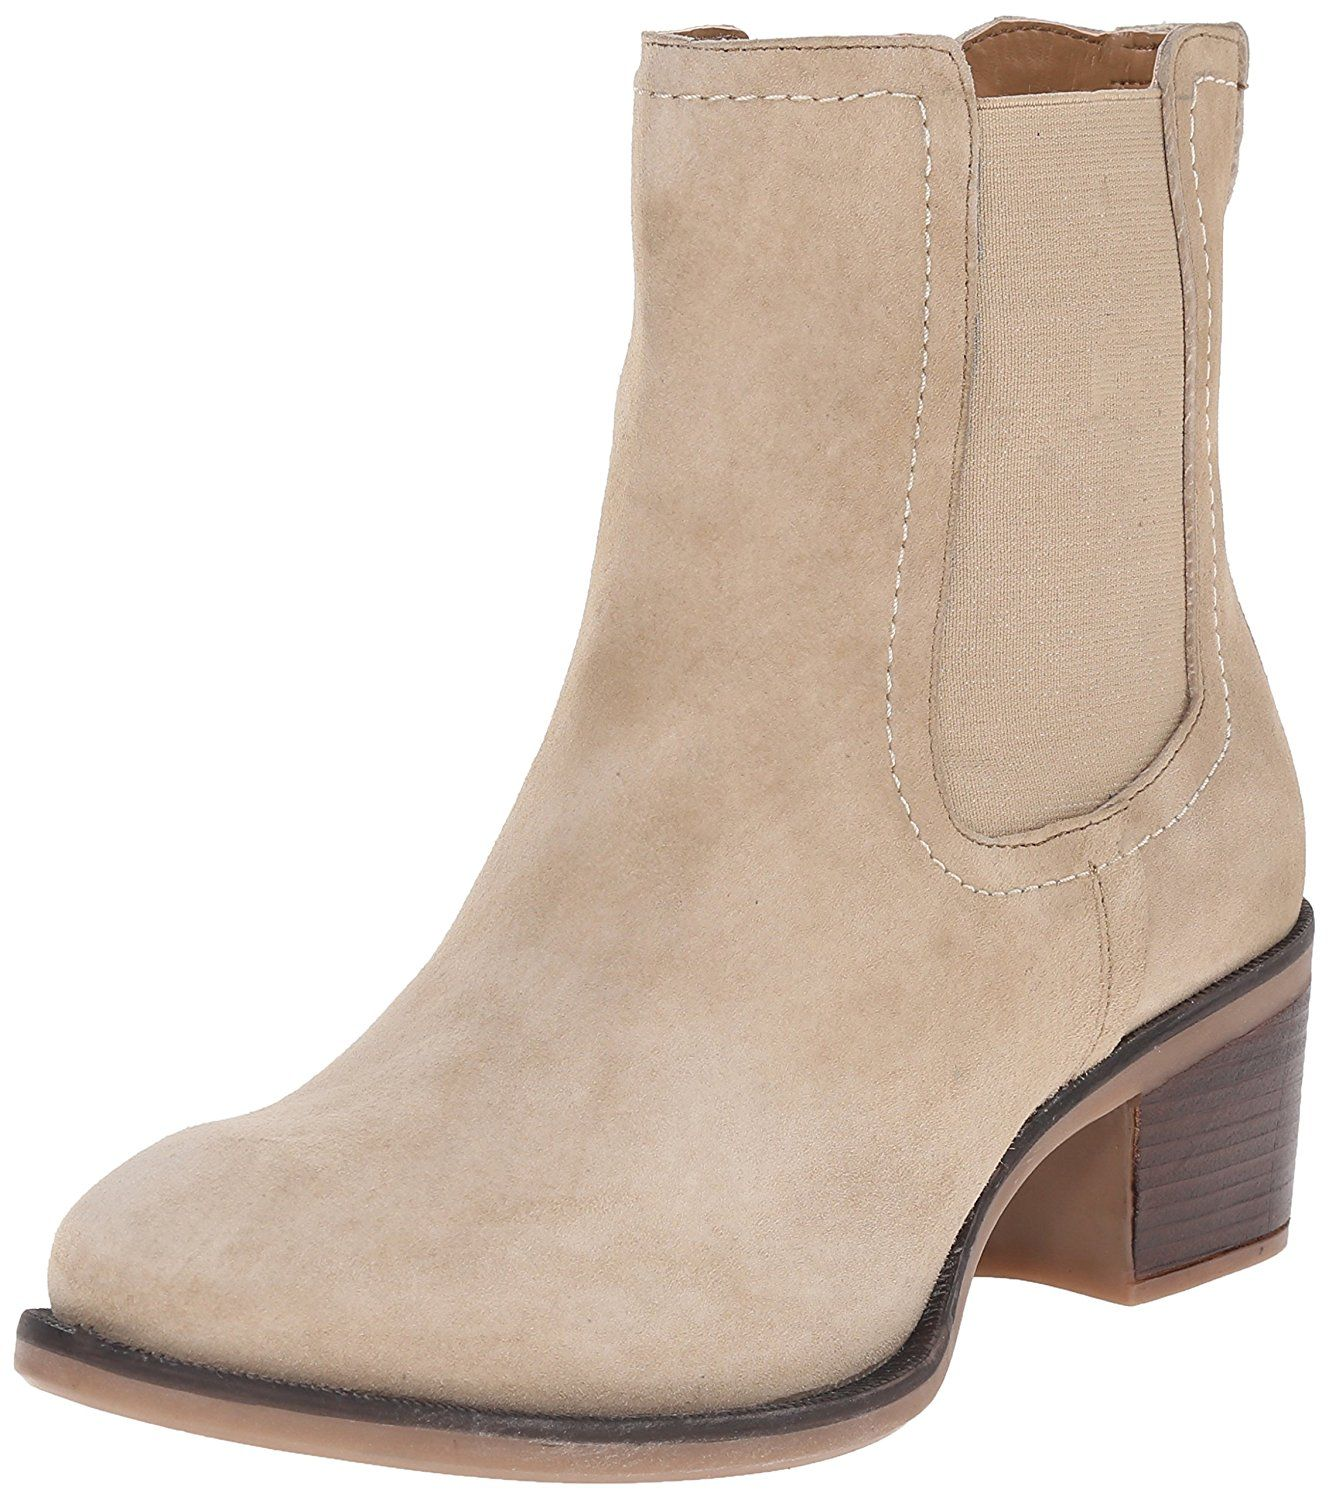 Hush Puppies Women S Landa Nellie Chelsea Boot Discover This Special Product Click The Image Boots Botas